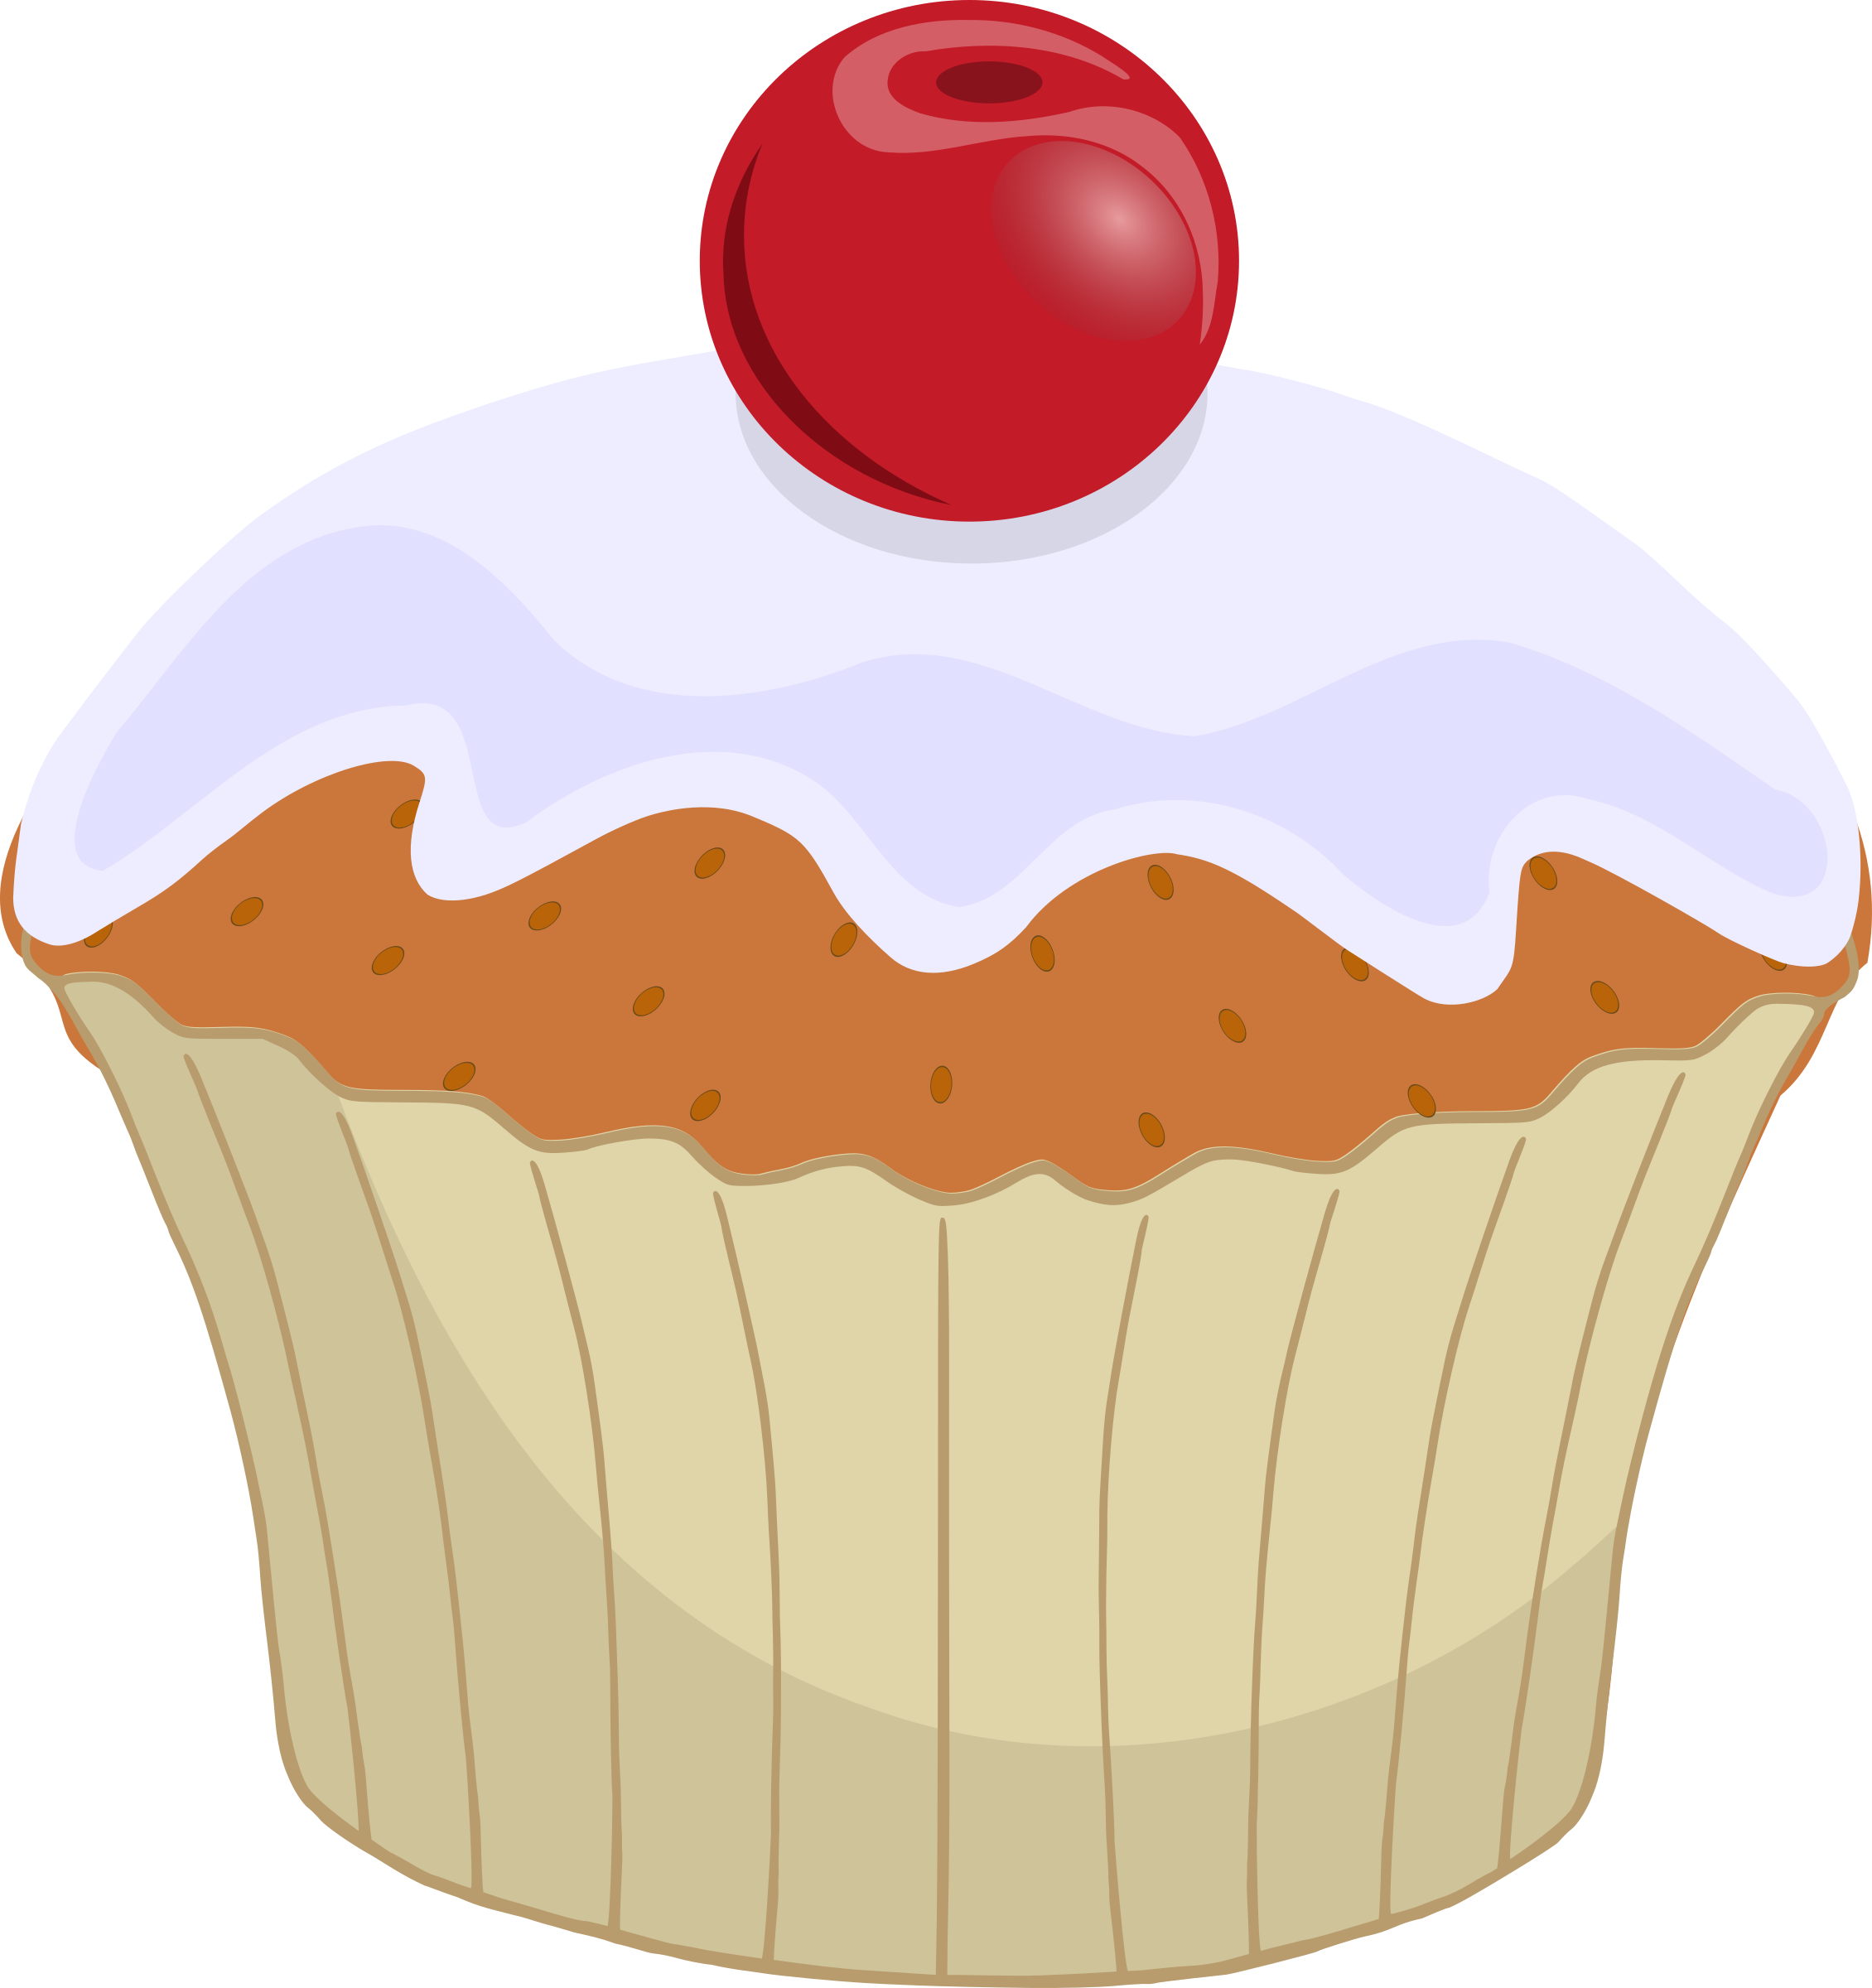 Big image png. Muffins clipart simple cupcake